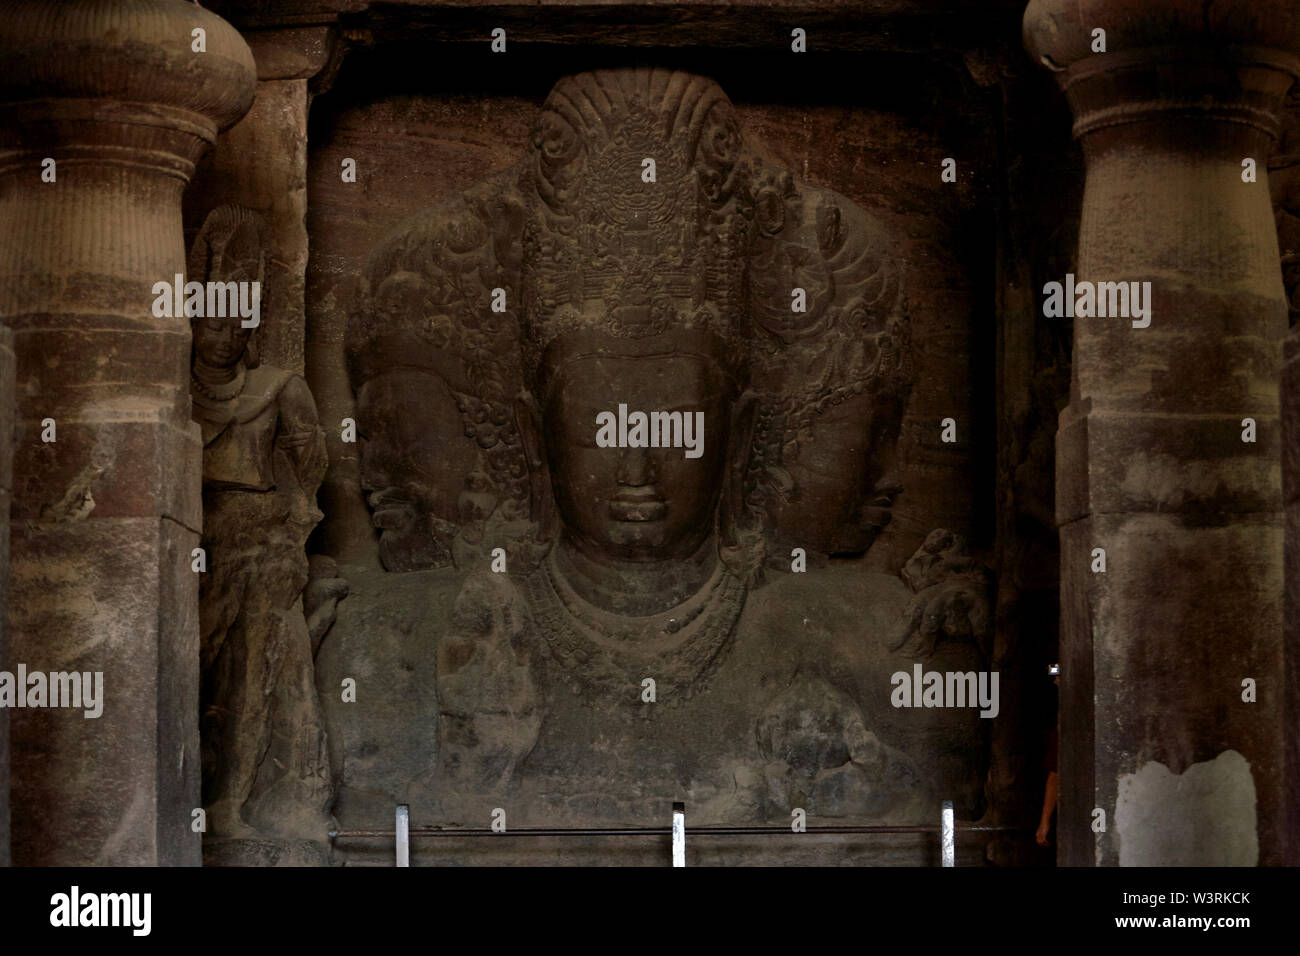 Sadasiva: Trimurti as aspects of Shiva: creation, protection, and destruction in Elephanta Caves a UNESCO World Heritage Site Mumbai maharashtra INDIA - Stock Image